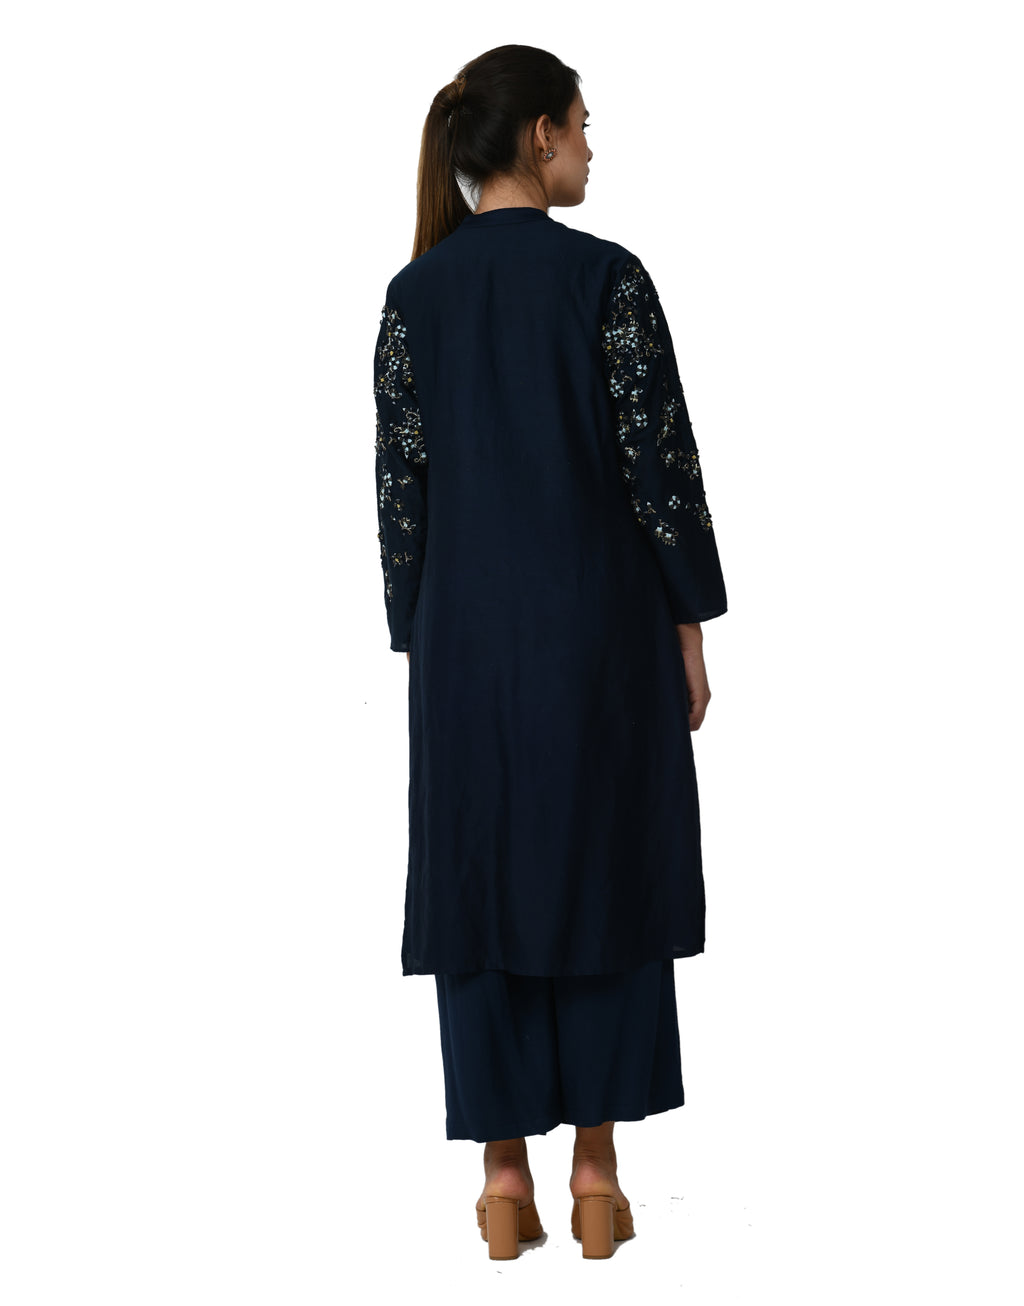 5X By Ajit Kumar - Navy Blue Placket Floral Kurta Set - INDIASPOPUP.COM